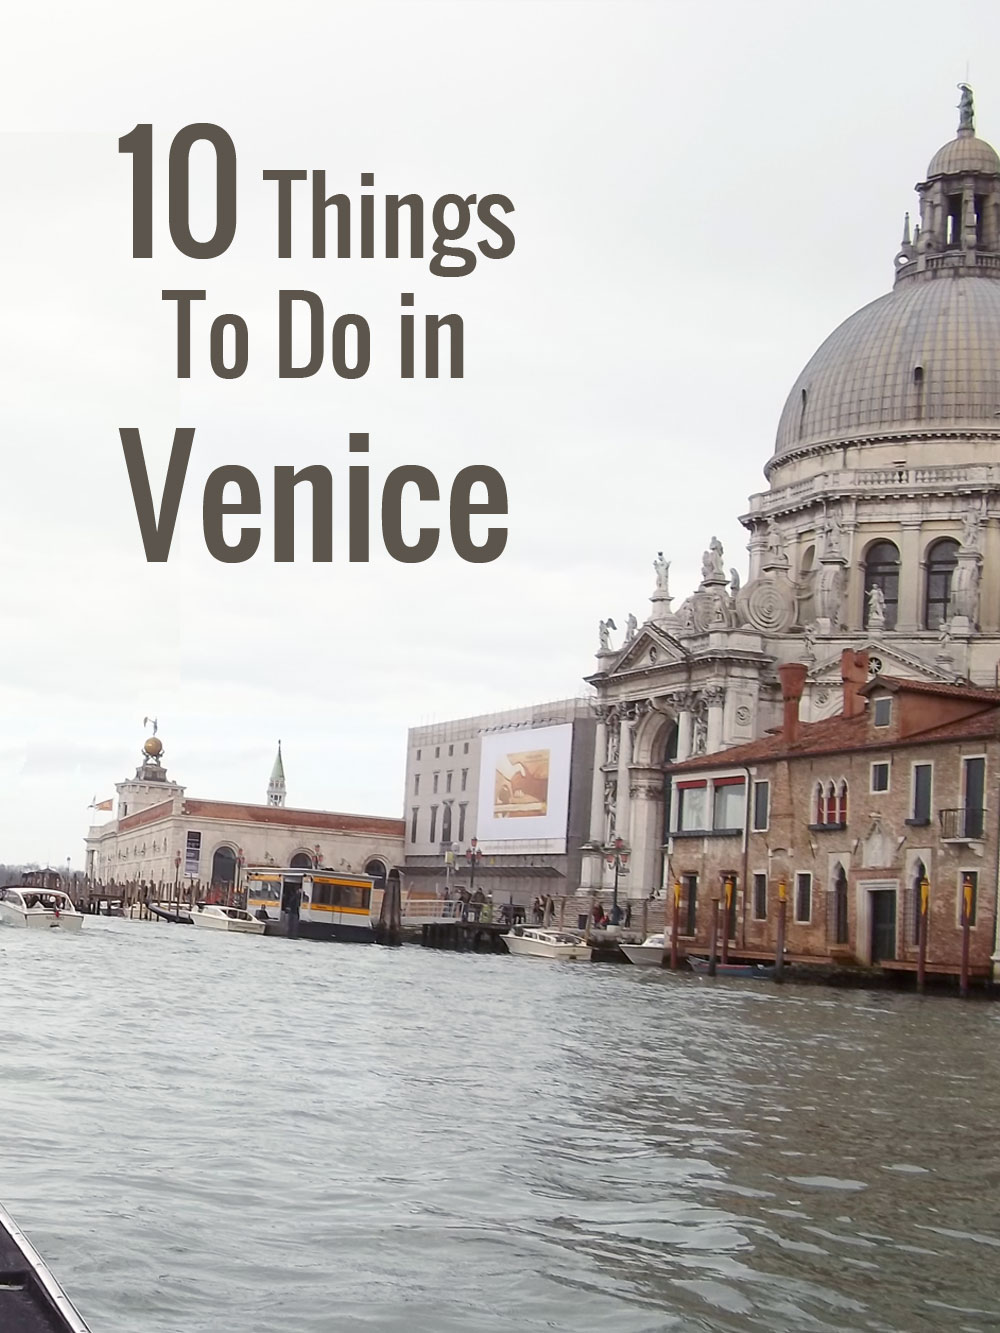 10 Things To Do in Venice